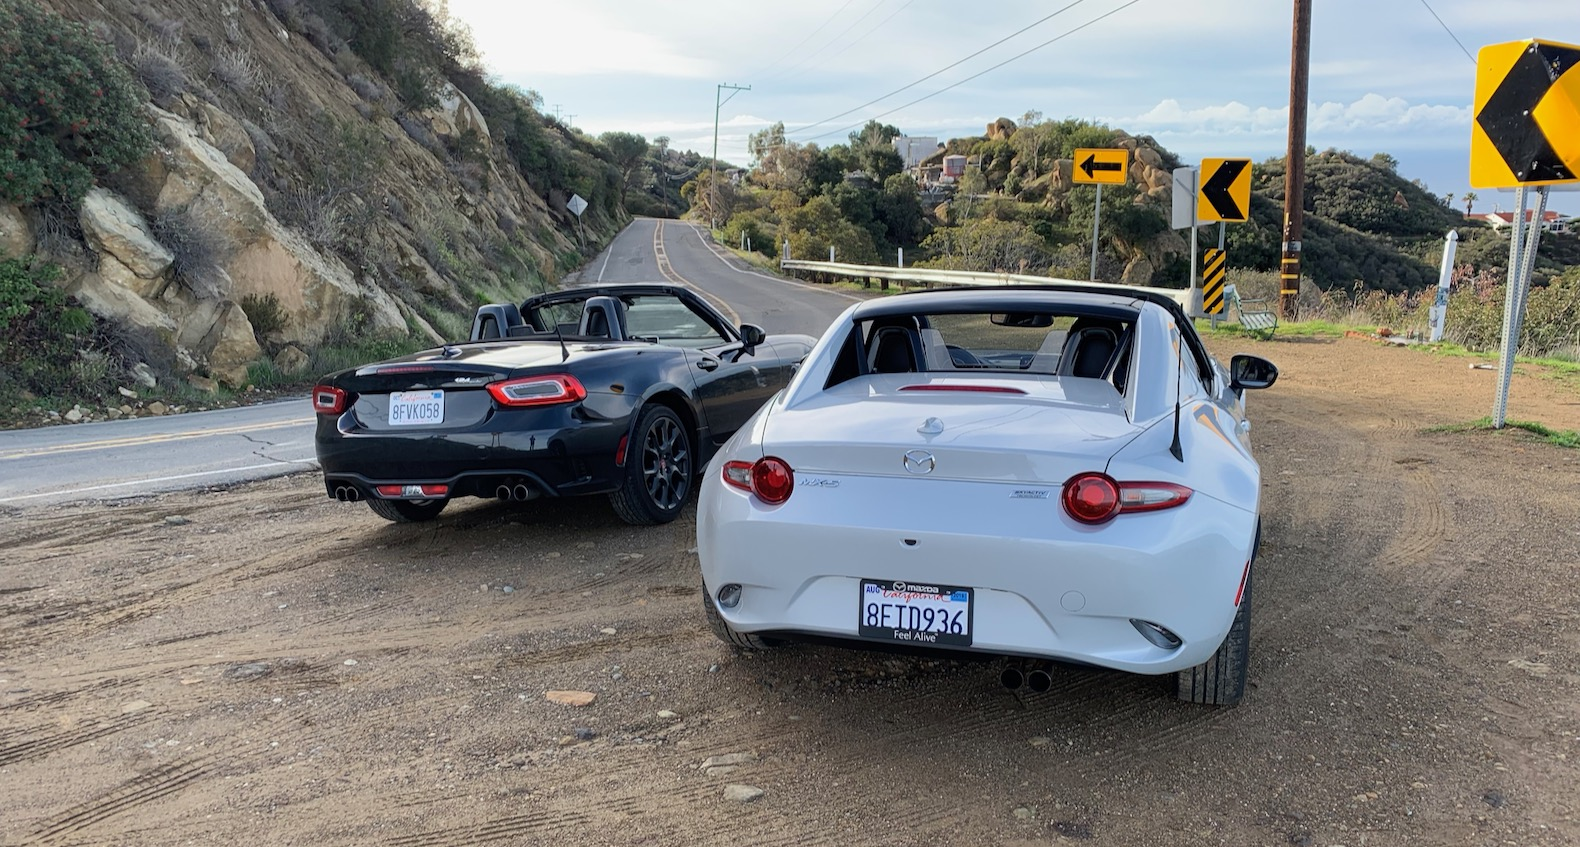 2019 Mazda Mx 5 Miata Vs 2018 Fiat 124 Spider Abarth Battle